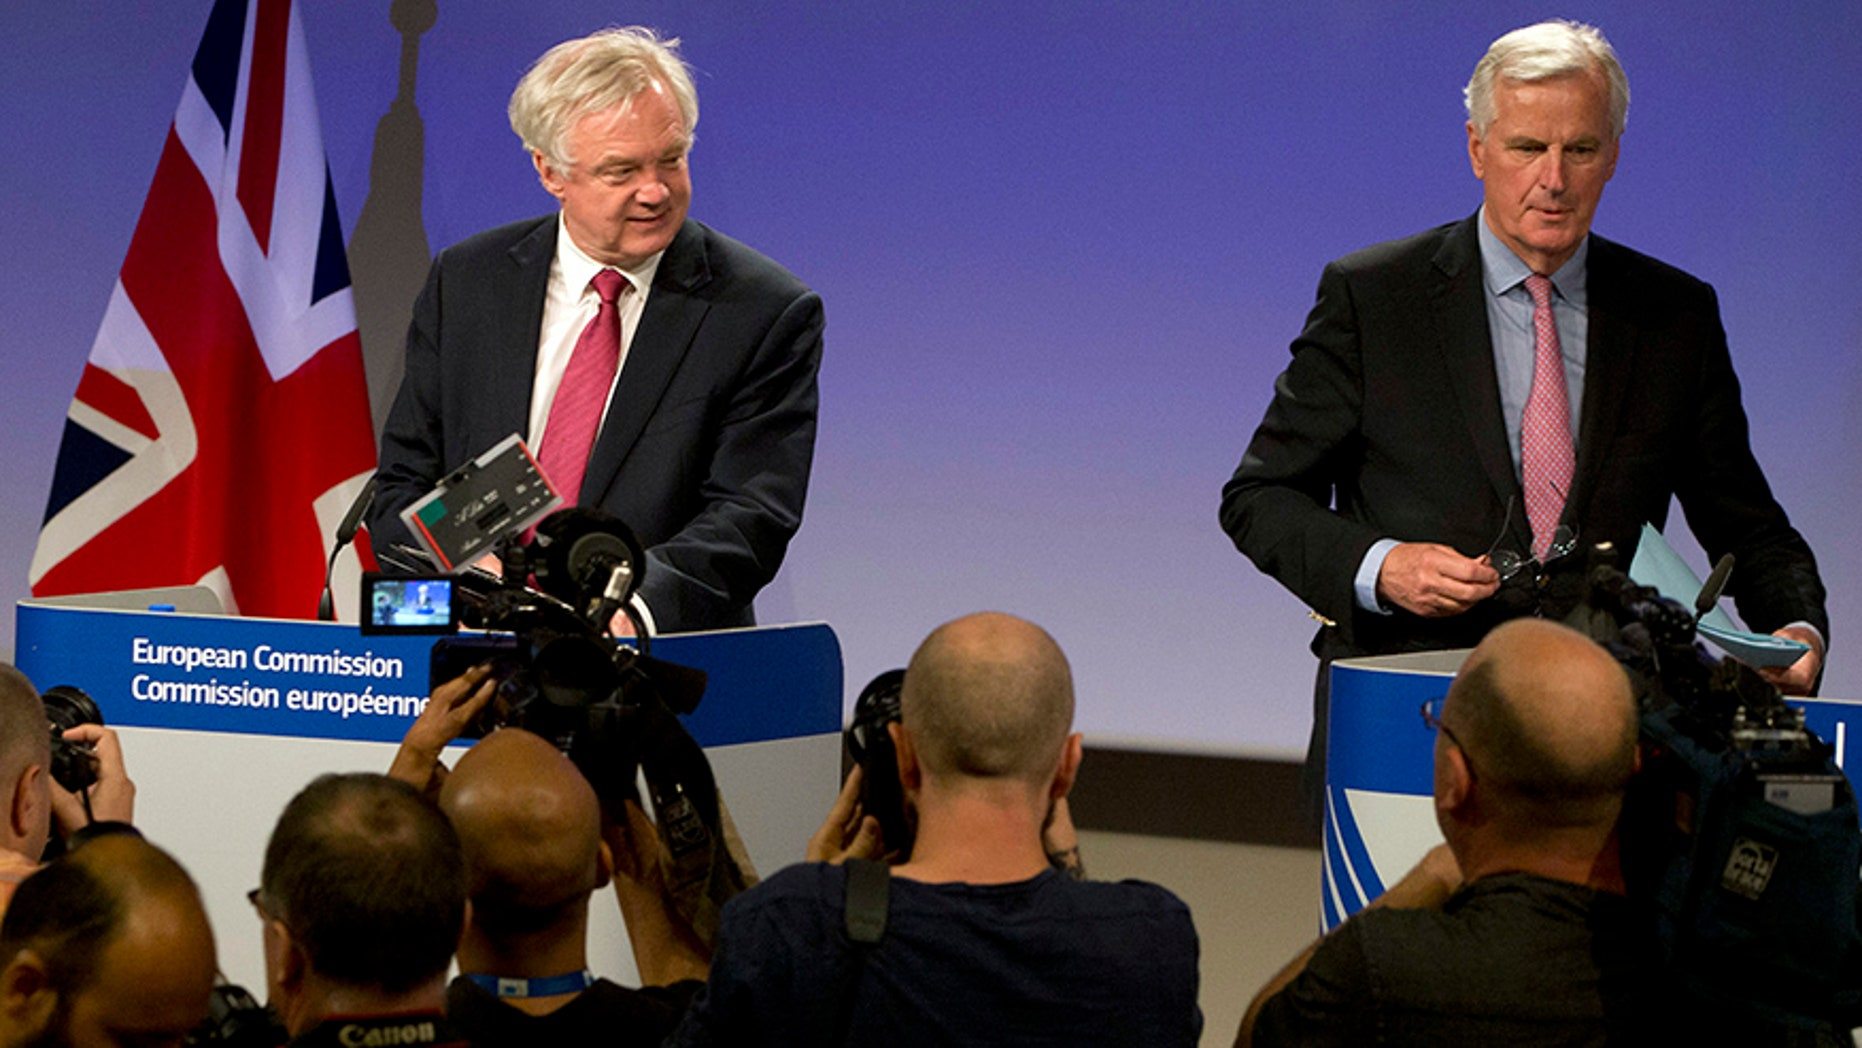 June 19, 2017: EU Chief Brexit Negotiator Michel Barnier, right, and British Secretary of State for Exiting the EU David Davis arrive for a media conference at EU headquarters in Brussels.